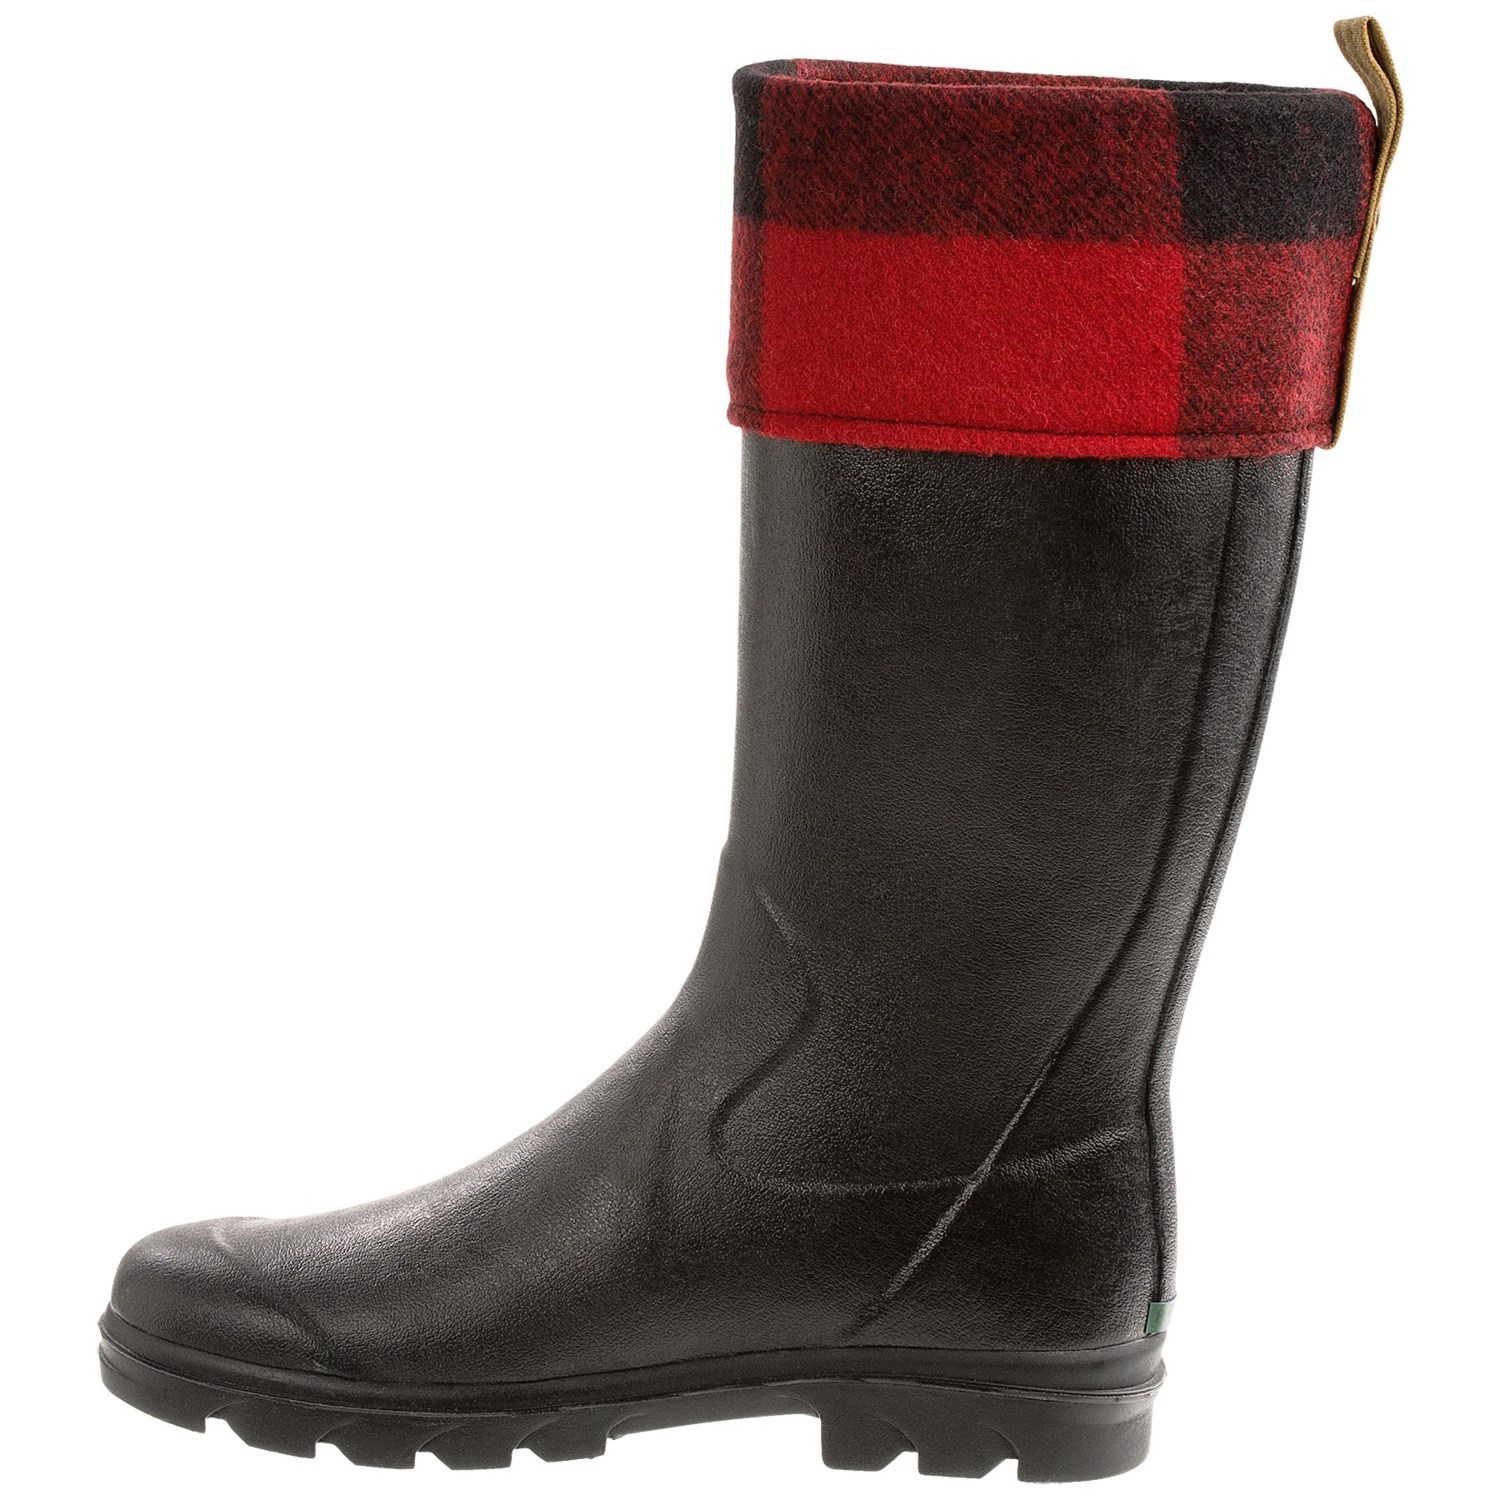 rubber boots for with creative type sobatapk